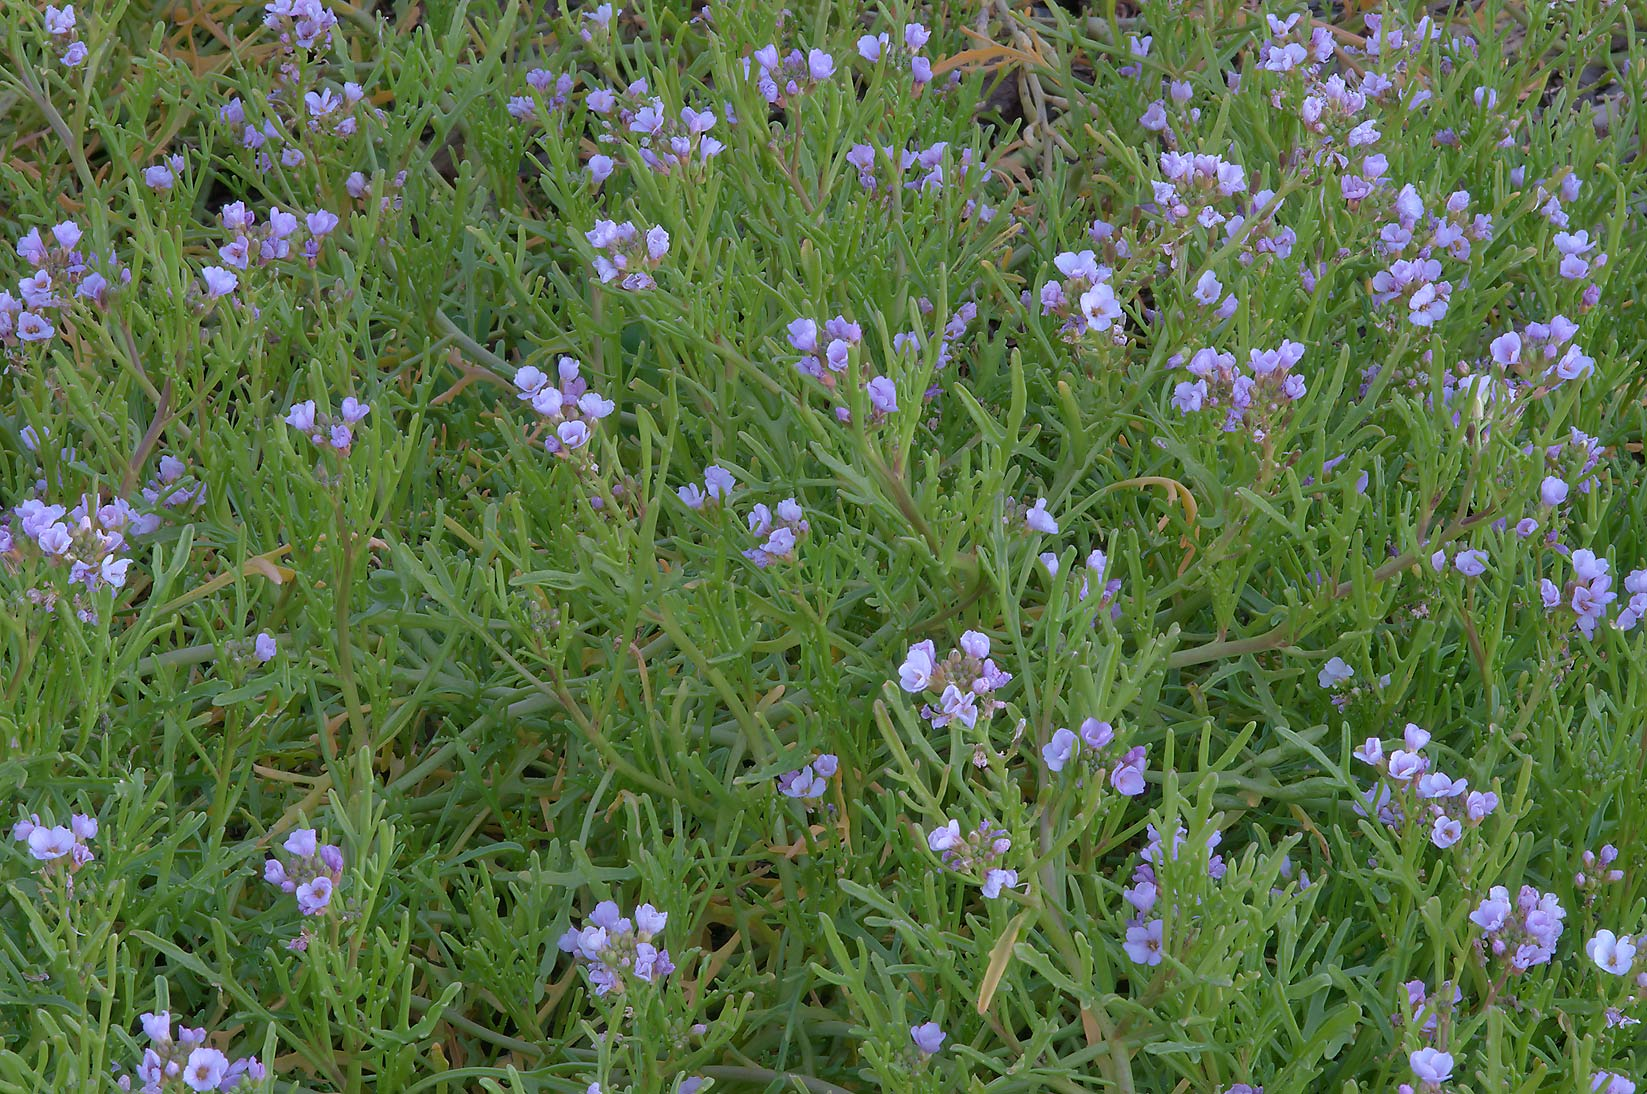 Sea rocket (Cakile maritima) with flowers in TAMU...M University. College Station, Texas